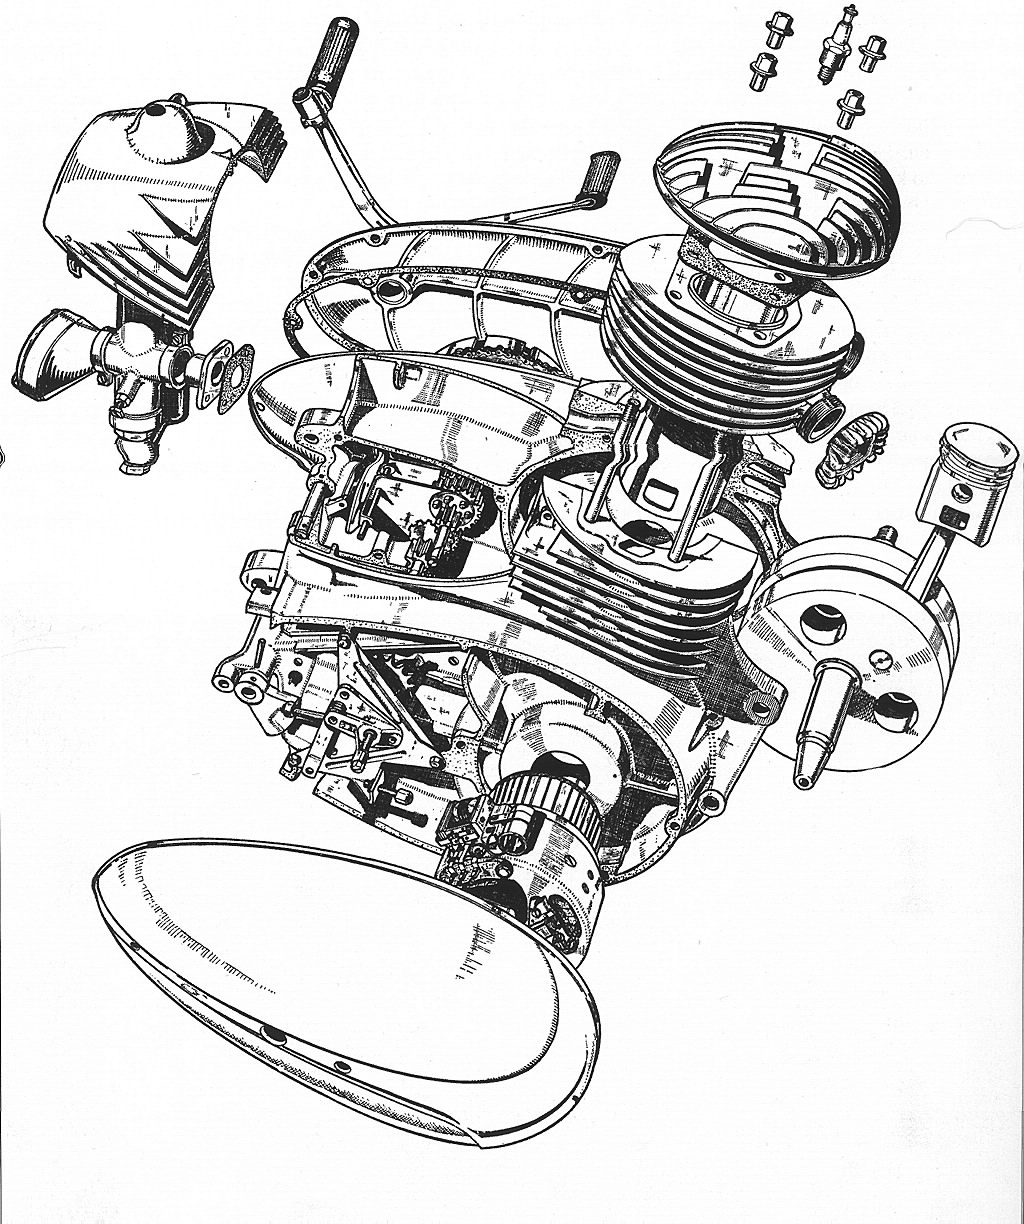 Gy6 50cc Scooter Carb Schematics